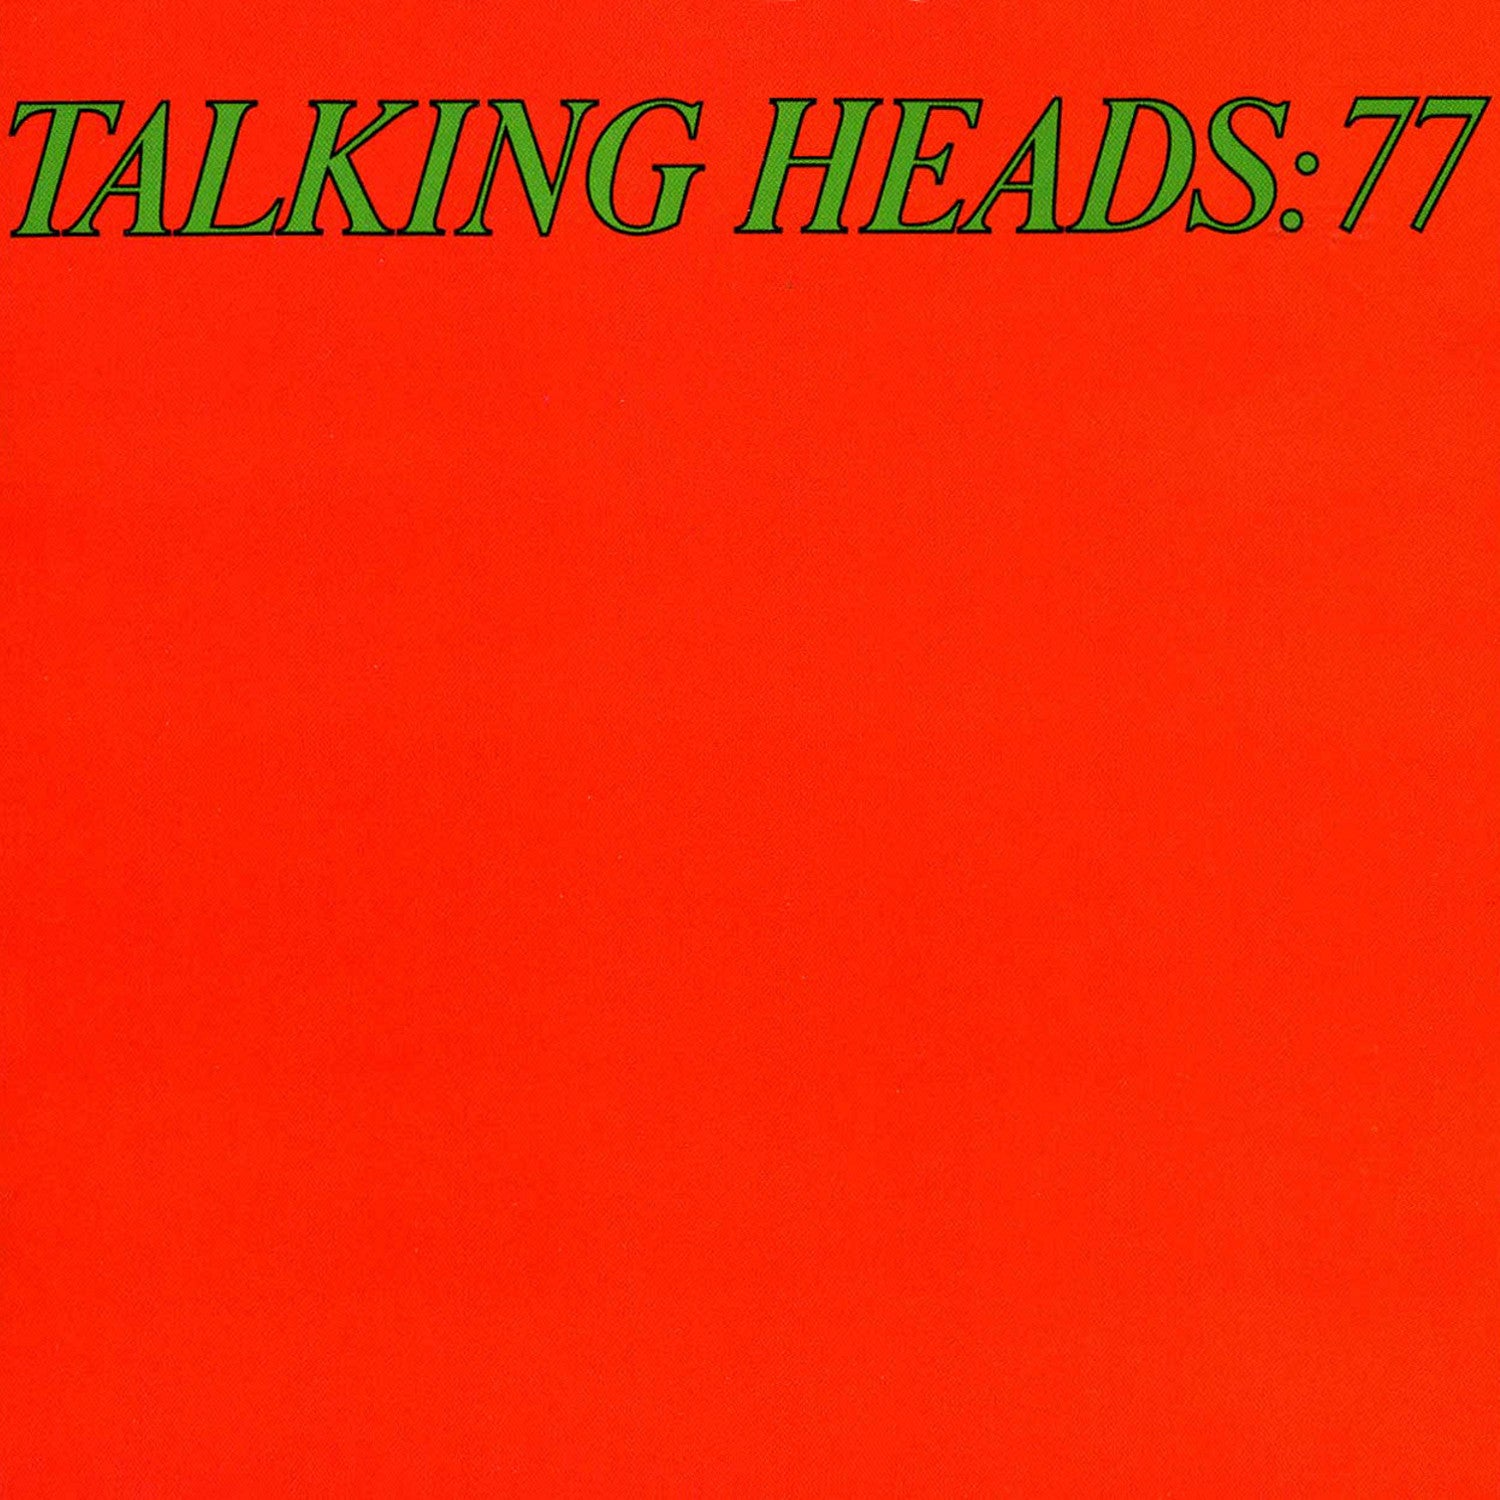 Talking Heads - 77 (Vinyl LP Record)